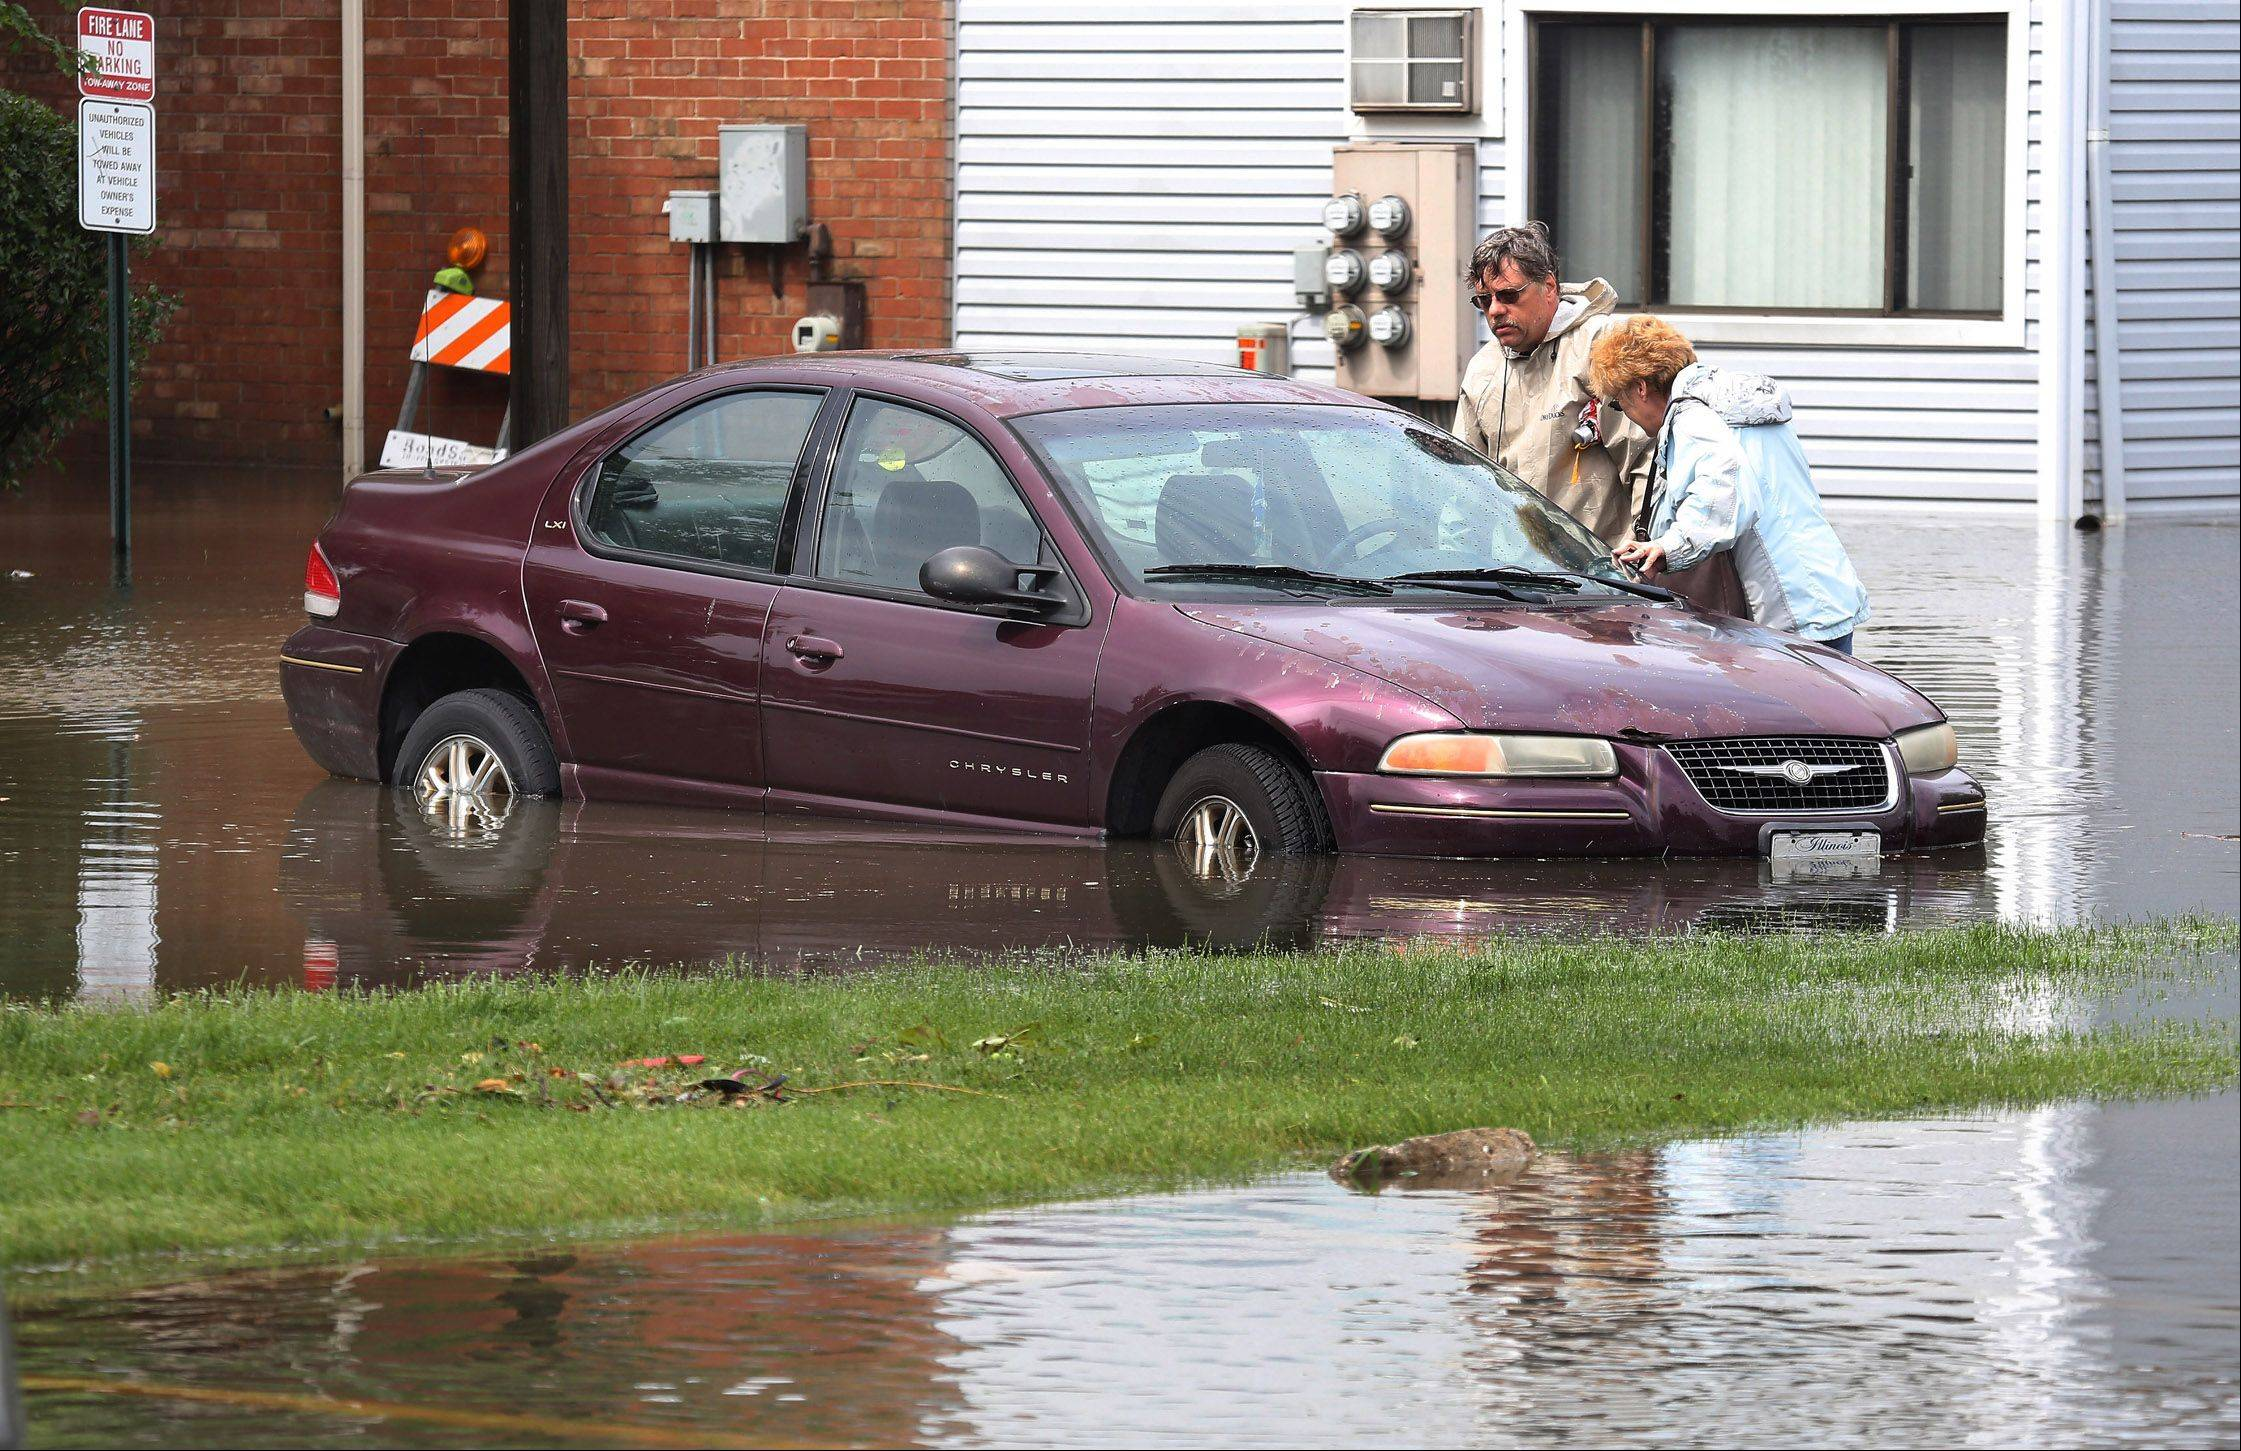 Kurt and Cheryl Prell inspect the condition of their car after flooding at the Runaway Bay Apartments in Palatine on Wednesday.